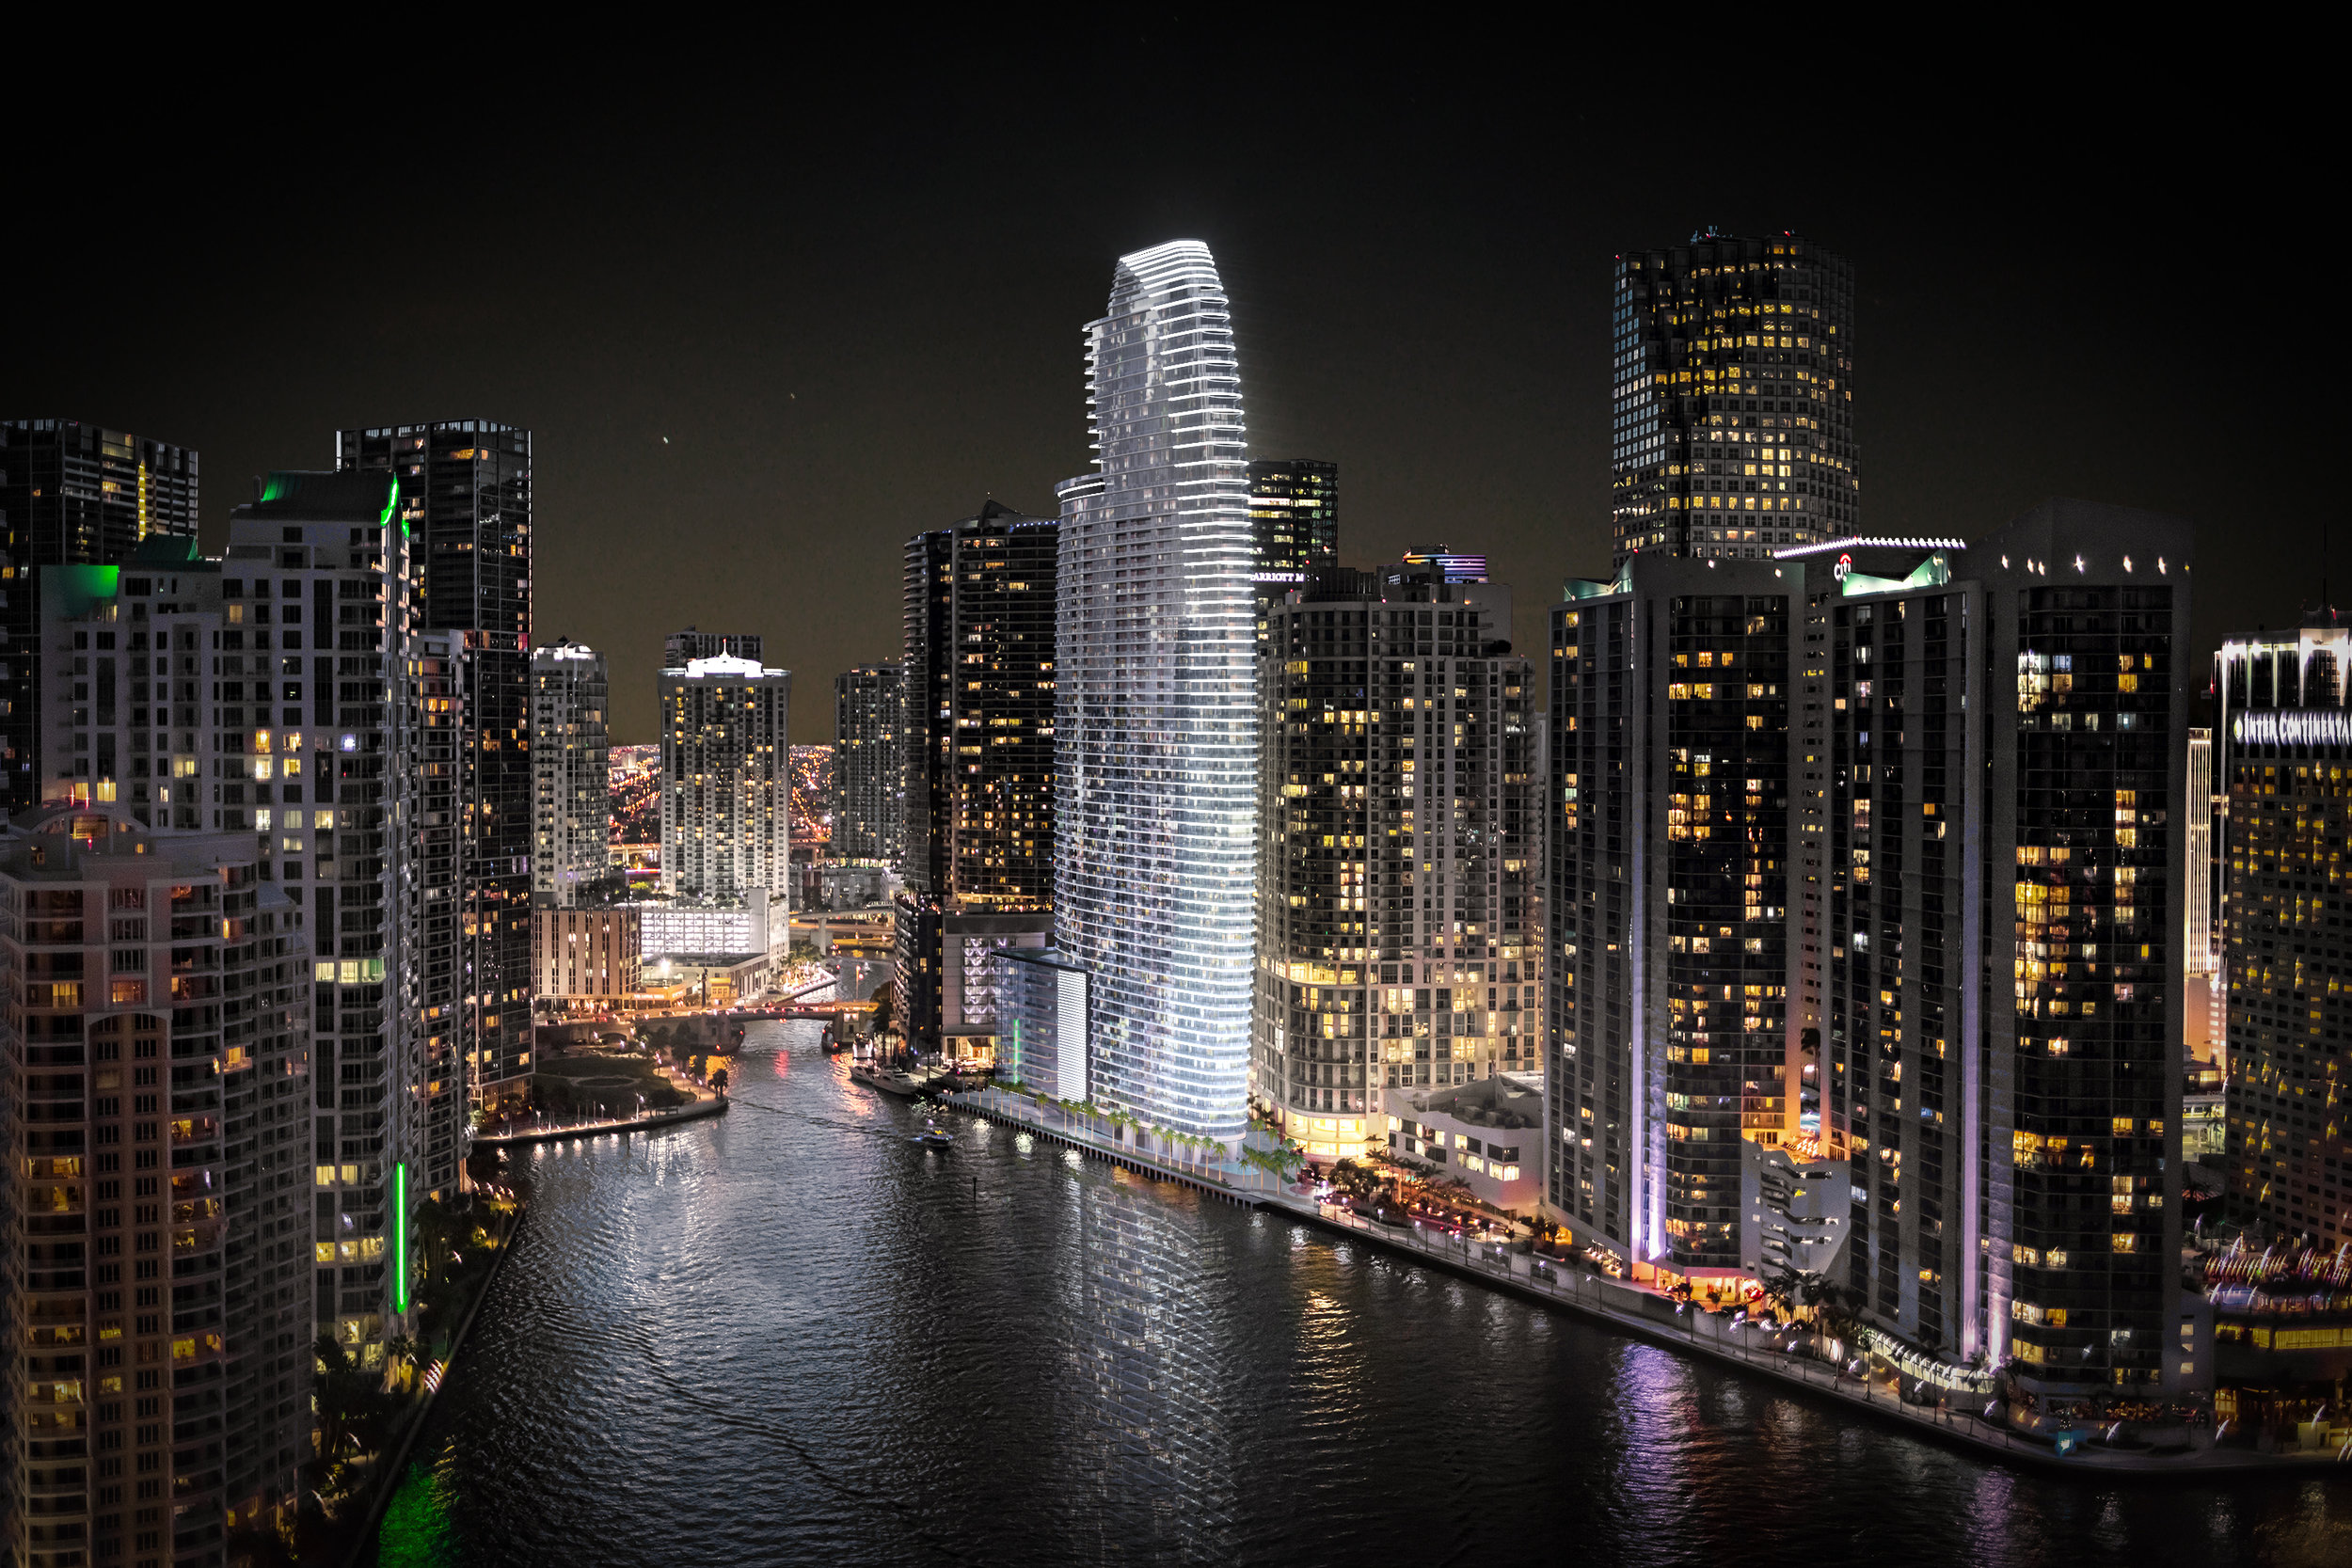 Aston Martin Residences & Coastal Construction Set For Massive 1,400 Truck 30-Hour Concrete Pour